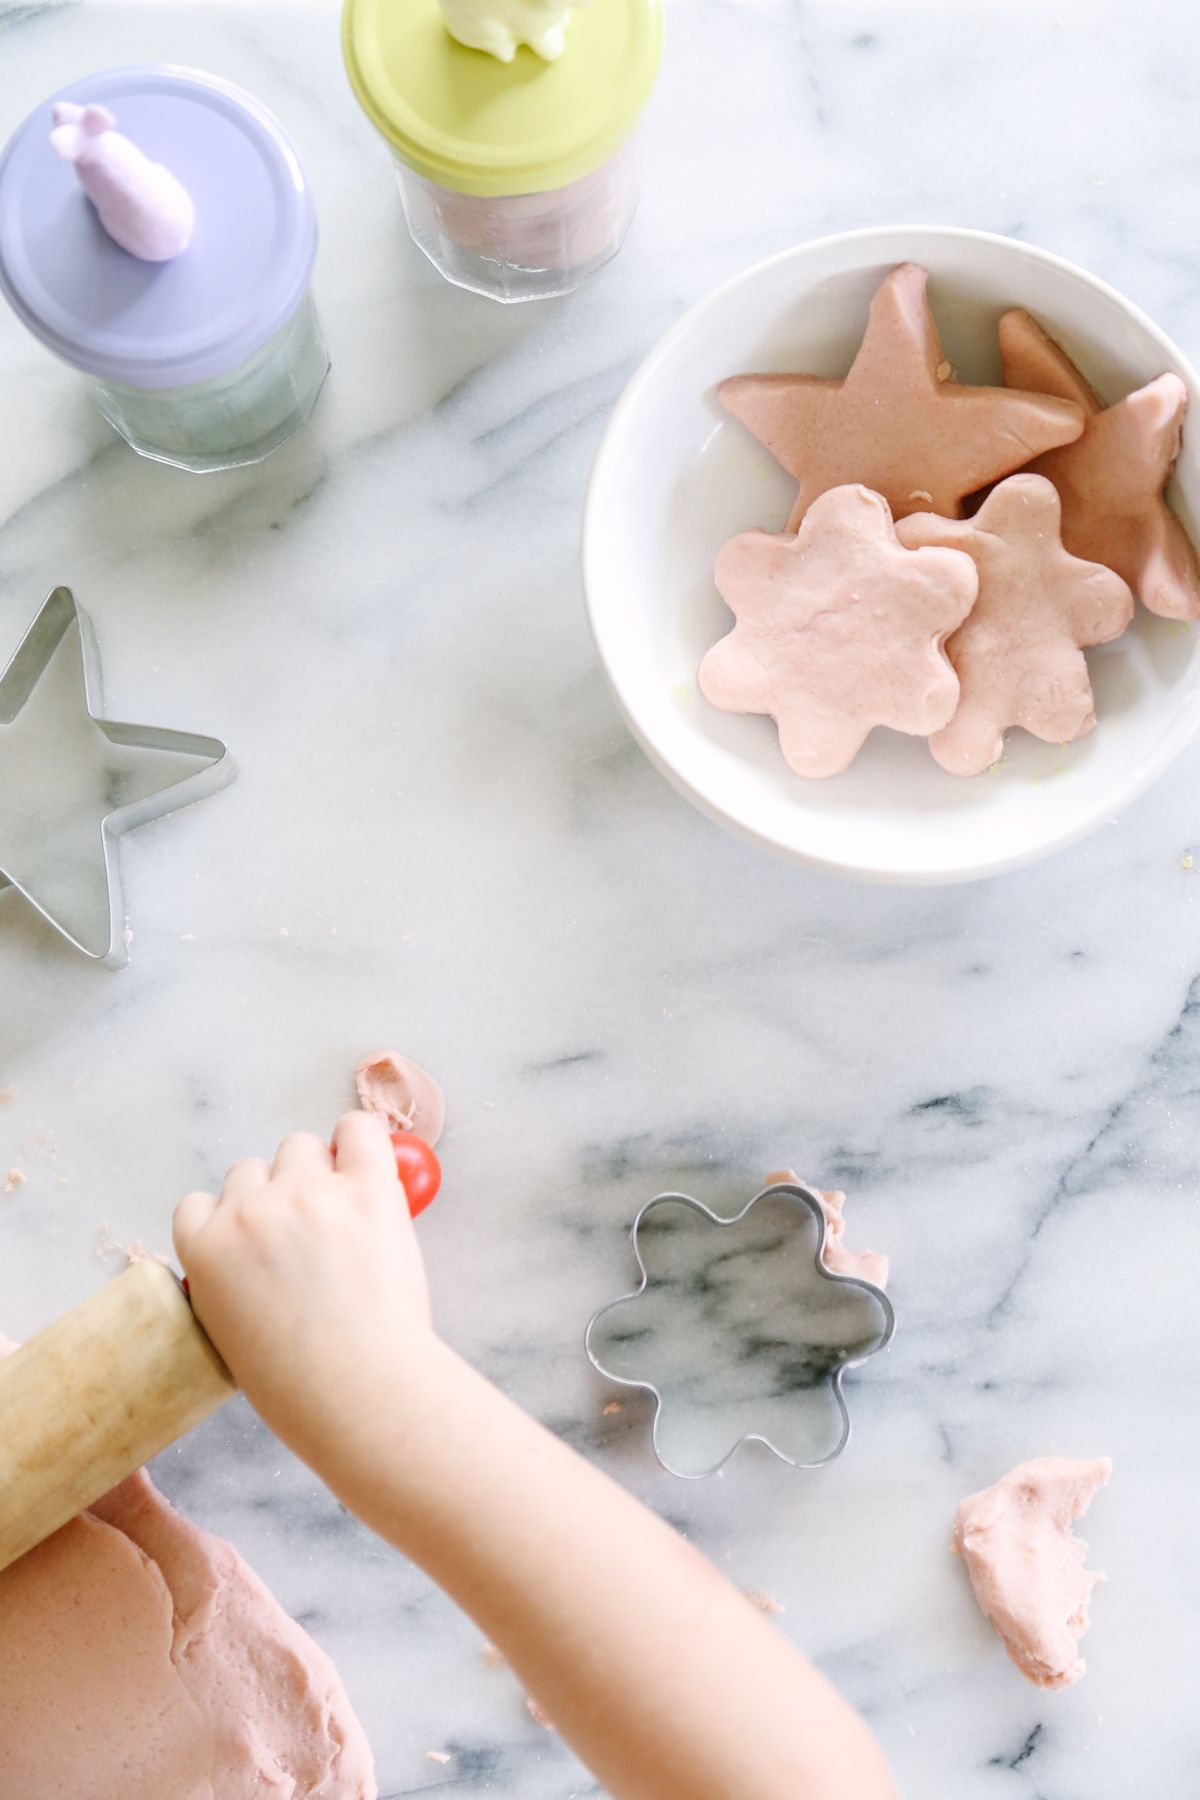 How to Make Natural Play Dough (Without Cream of Tartar